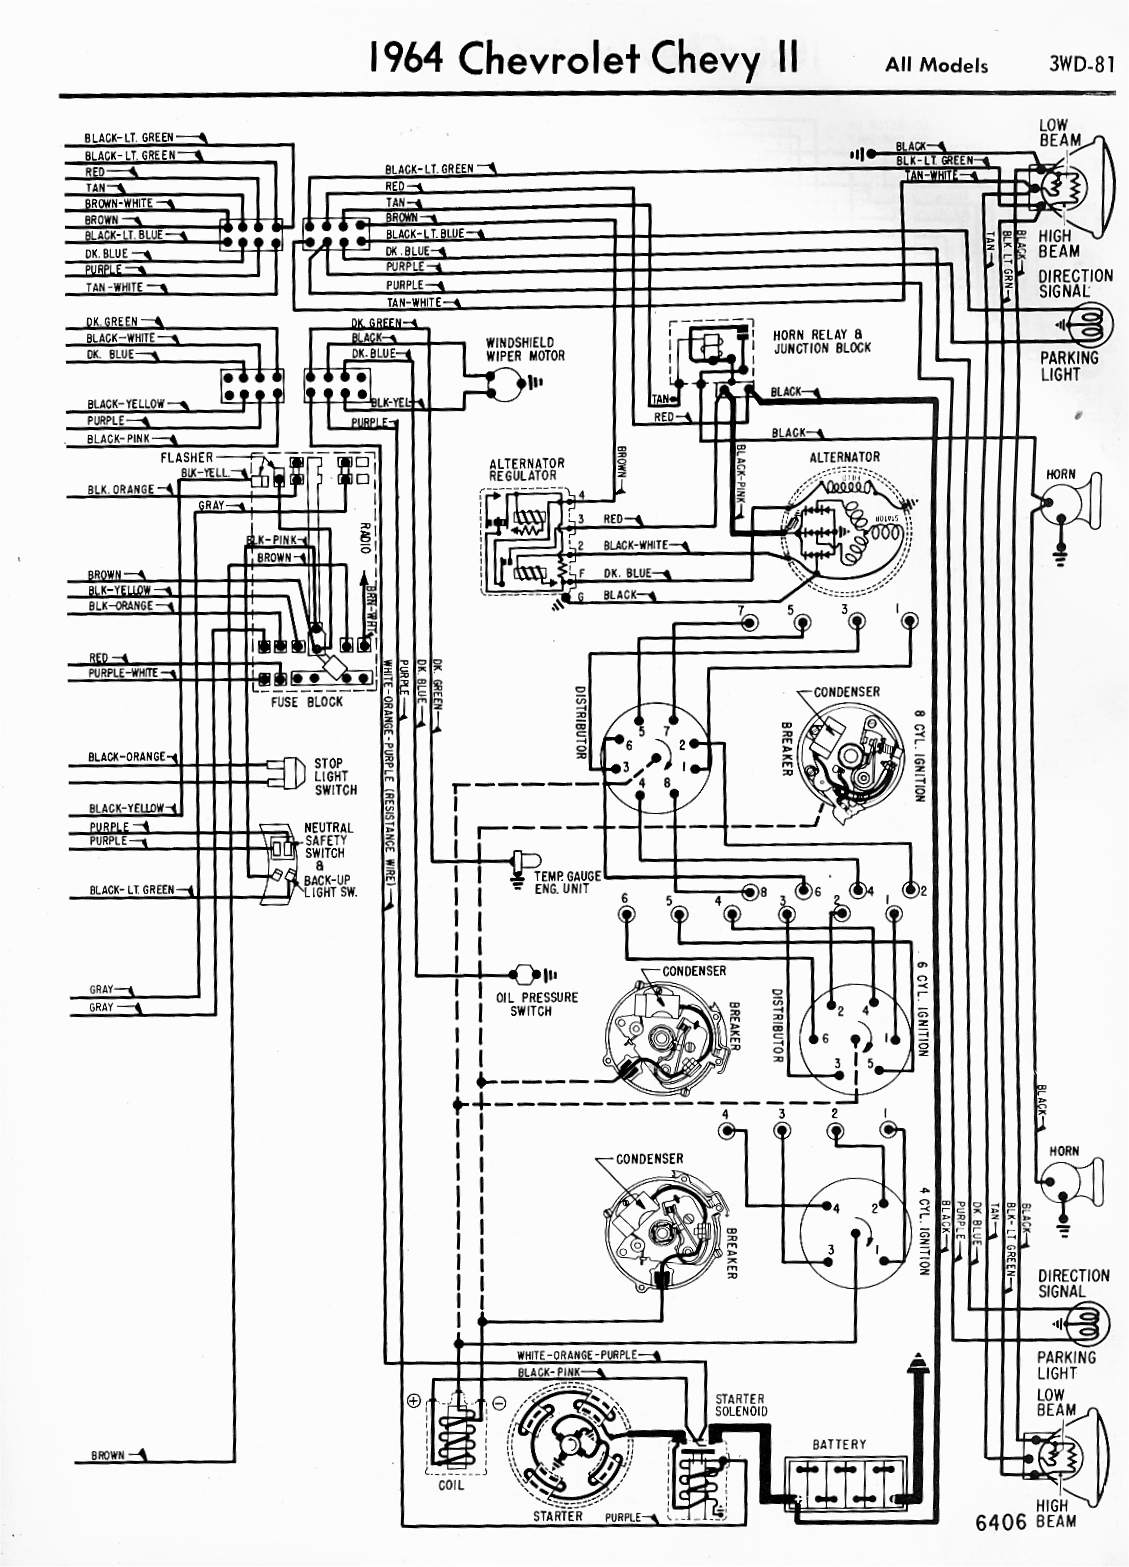 Incredible 1969 Chevy Truck Ignition Wiring Diagram Wiring Diagram Data Schema Wiring Cloud Dulfrecoveryedborg